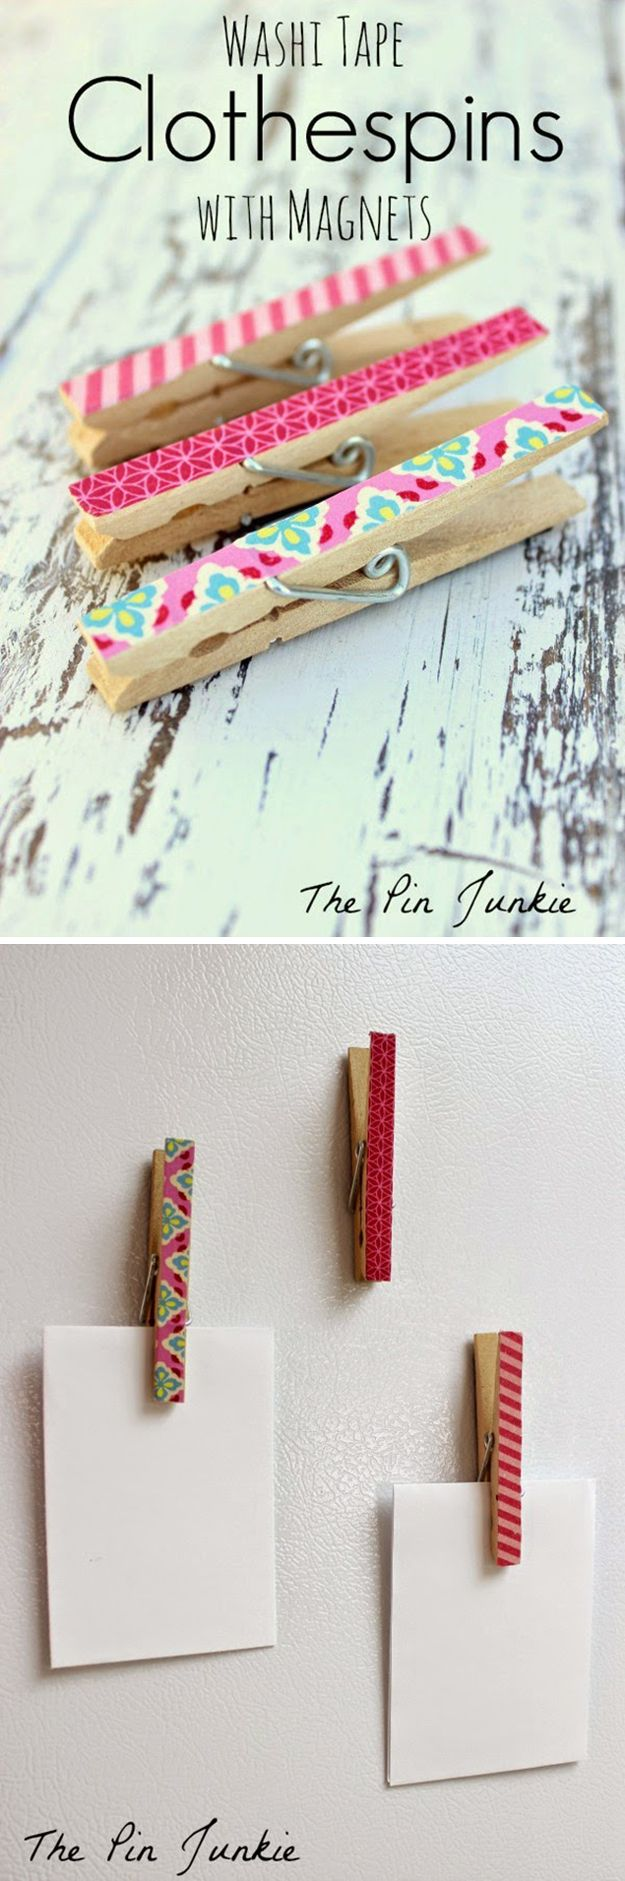 100 Washi Tape Ideas To Style And